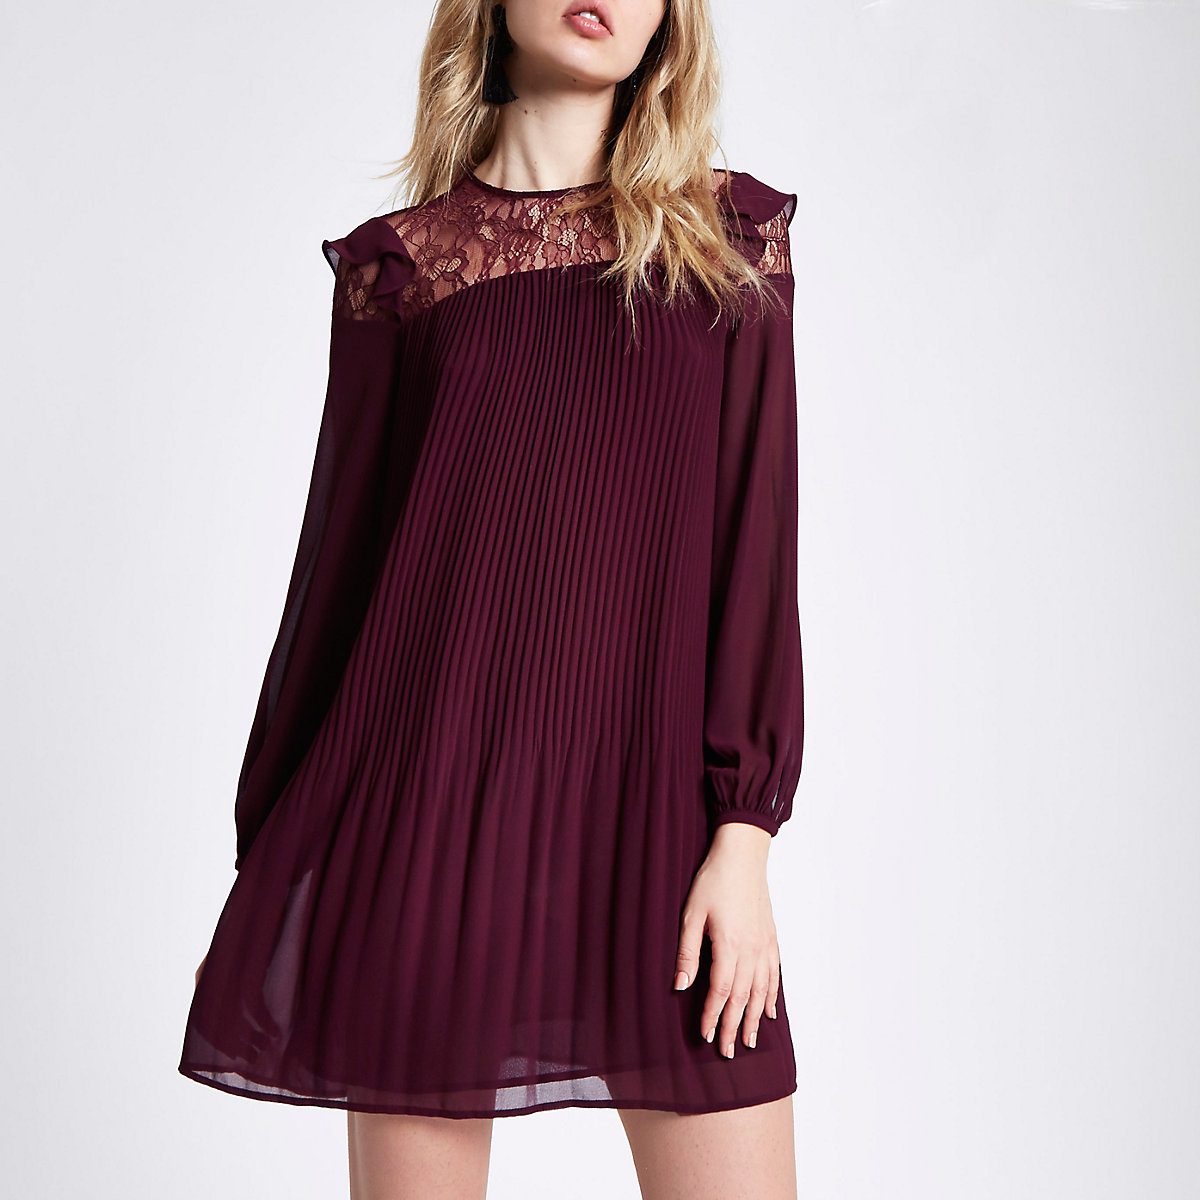 Dark red pleated lace frill swing dress